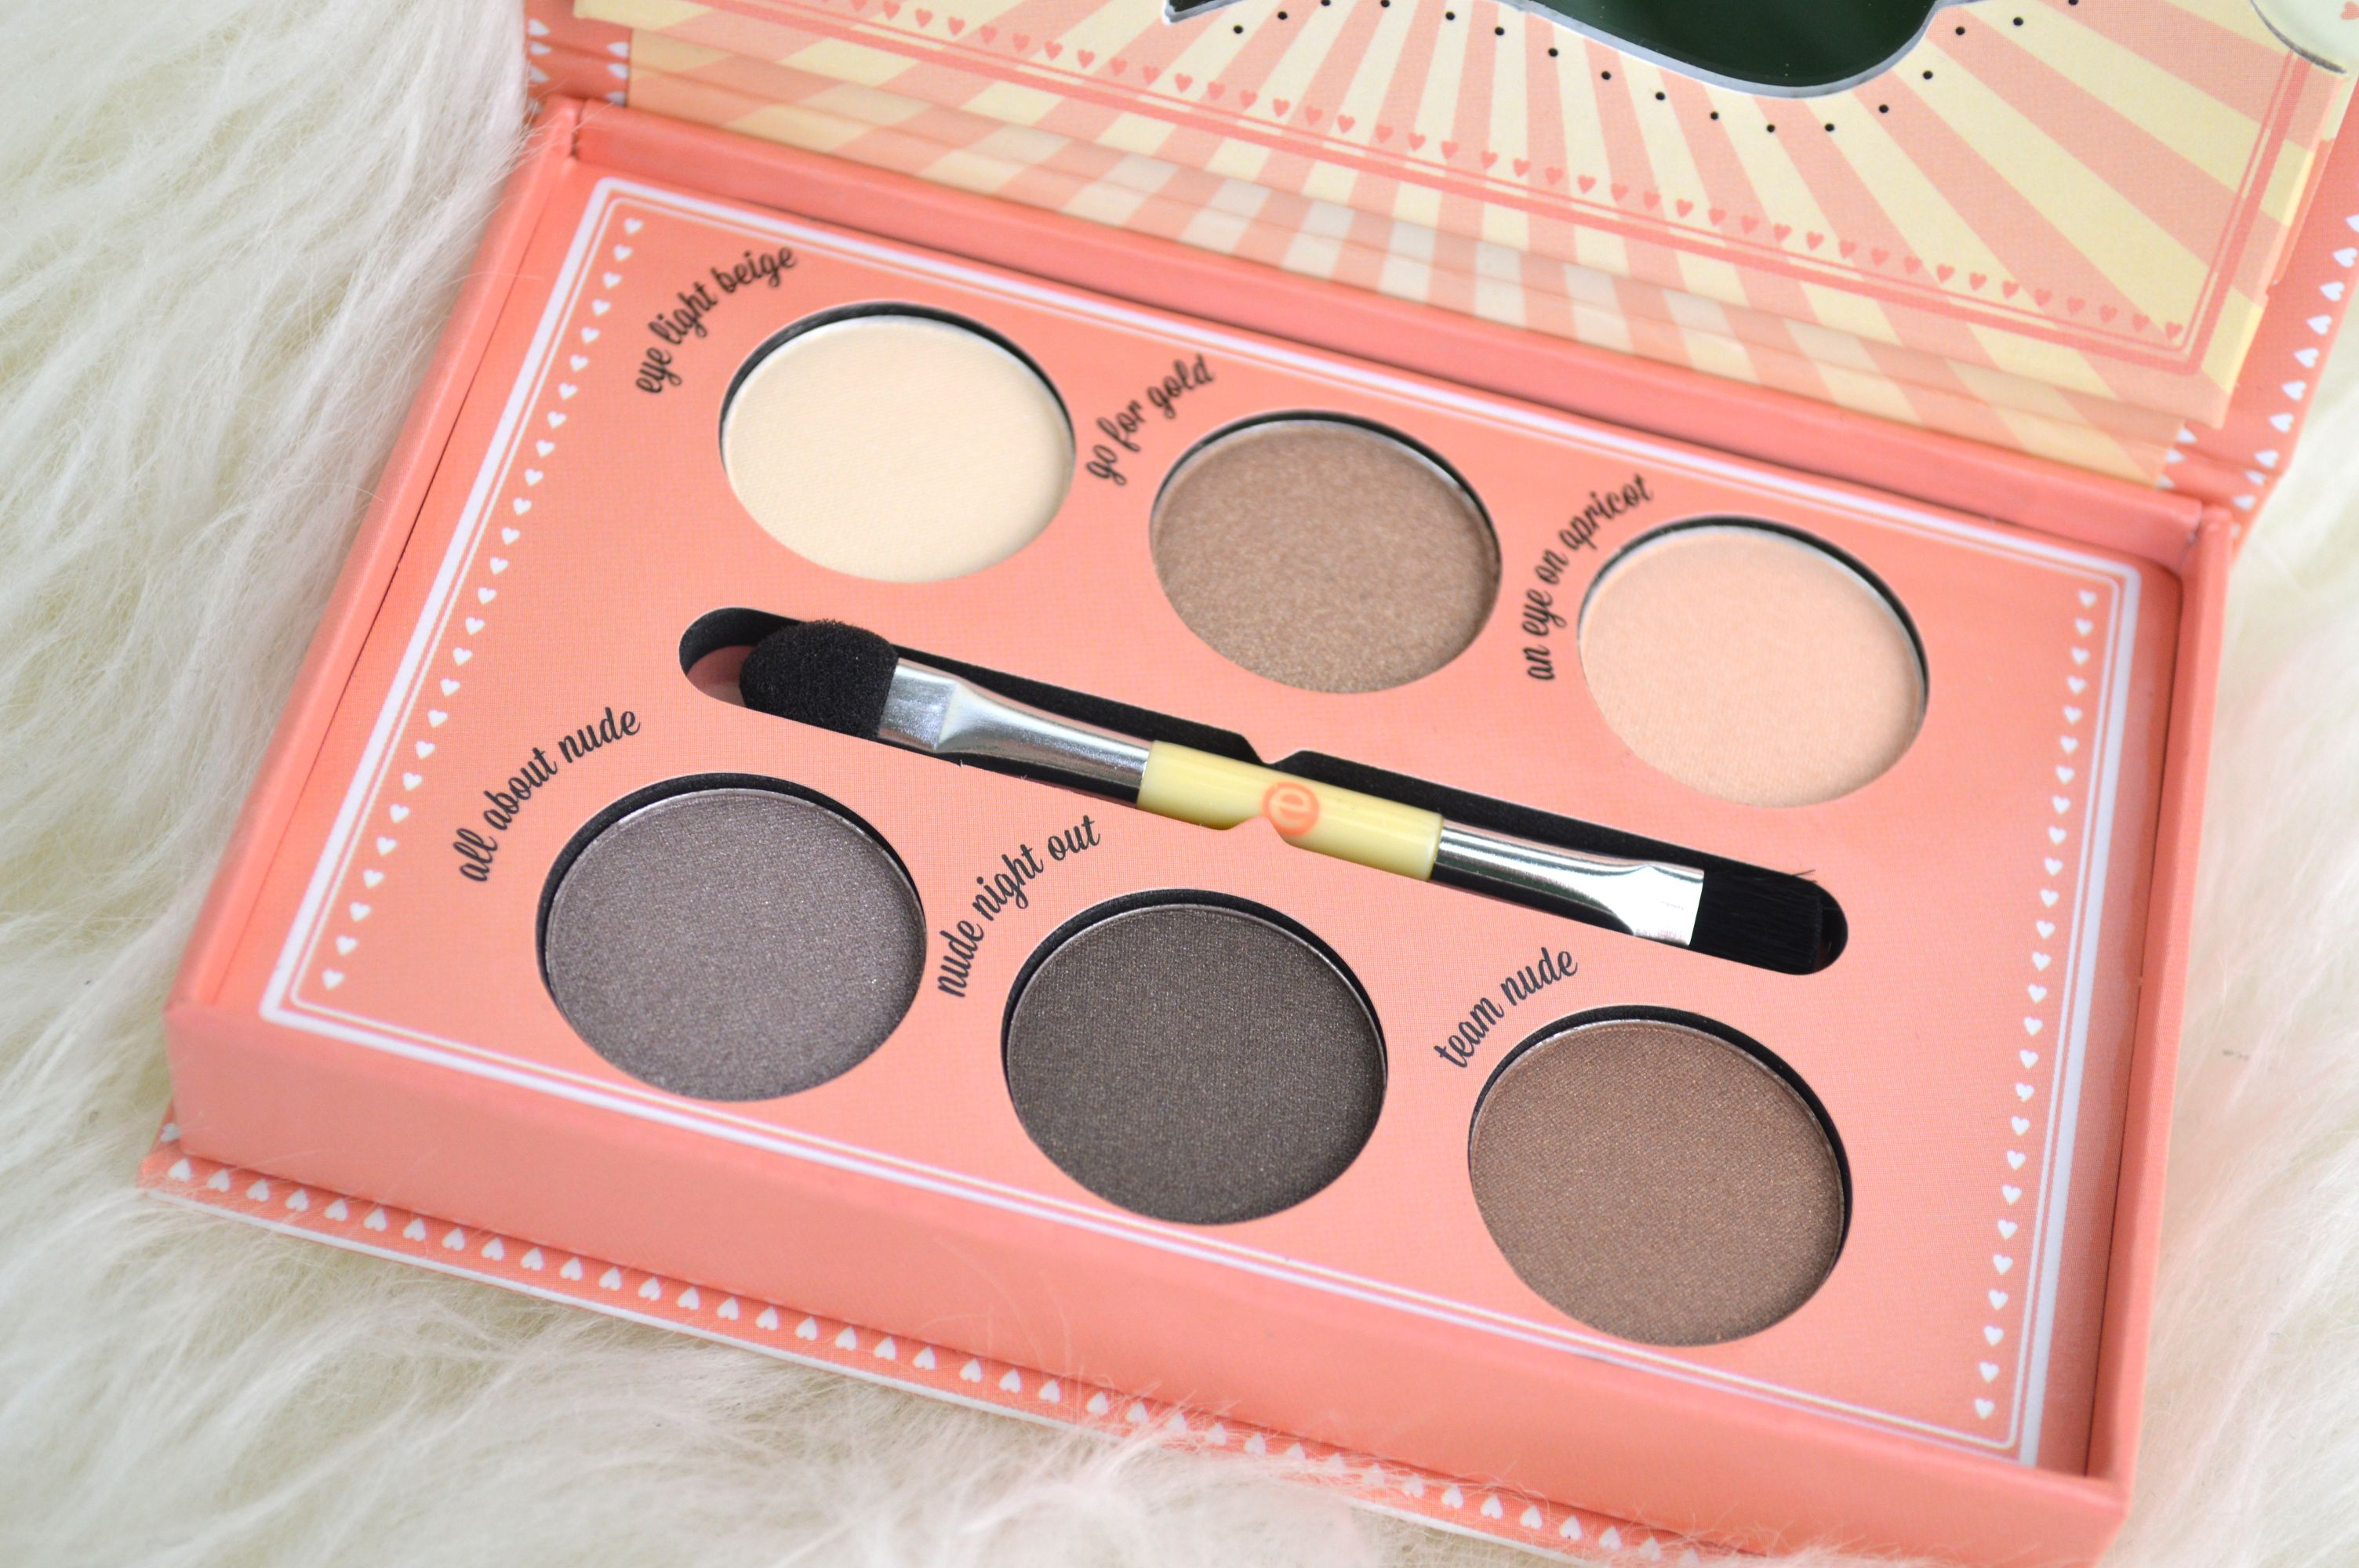 Inhalt_Essence_How_to_make_nude_eyes_Makeup_box